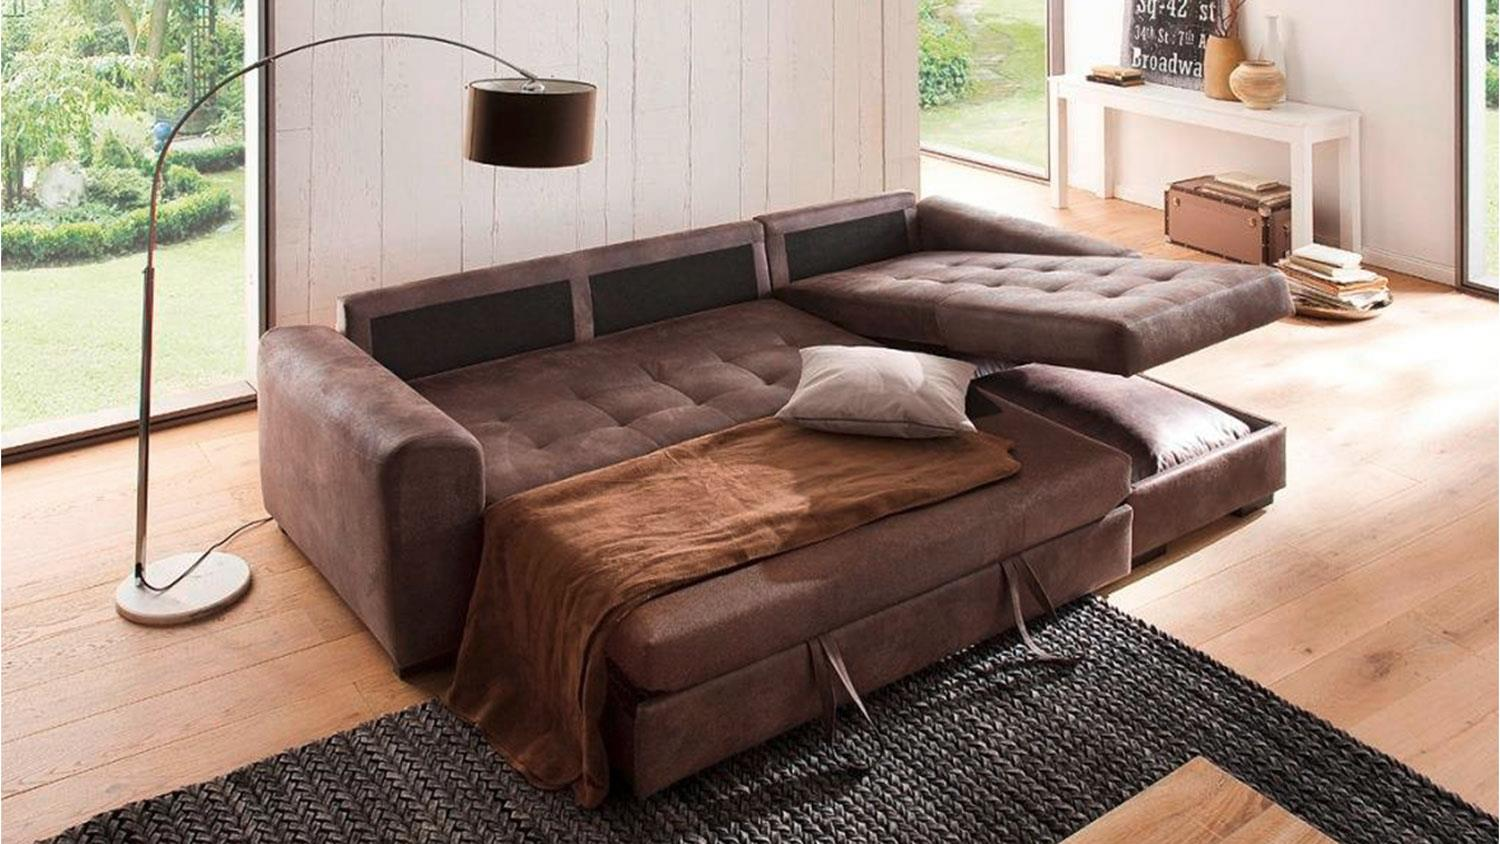 Sofa Ecksofa Mit Bettkasten Sofa Trinidad Ecksofa Dark Brown Schlaffunktion Bettkasten